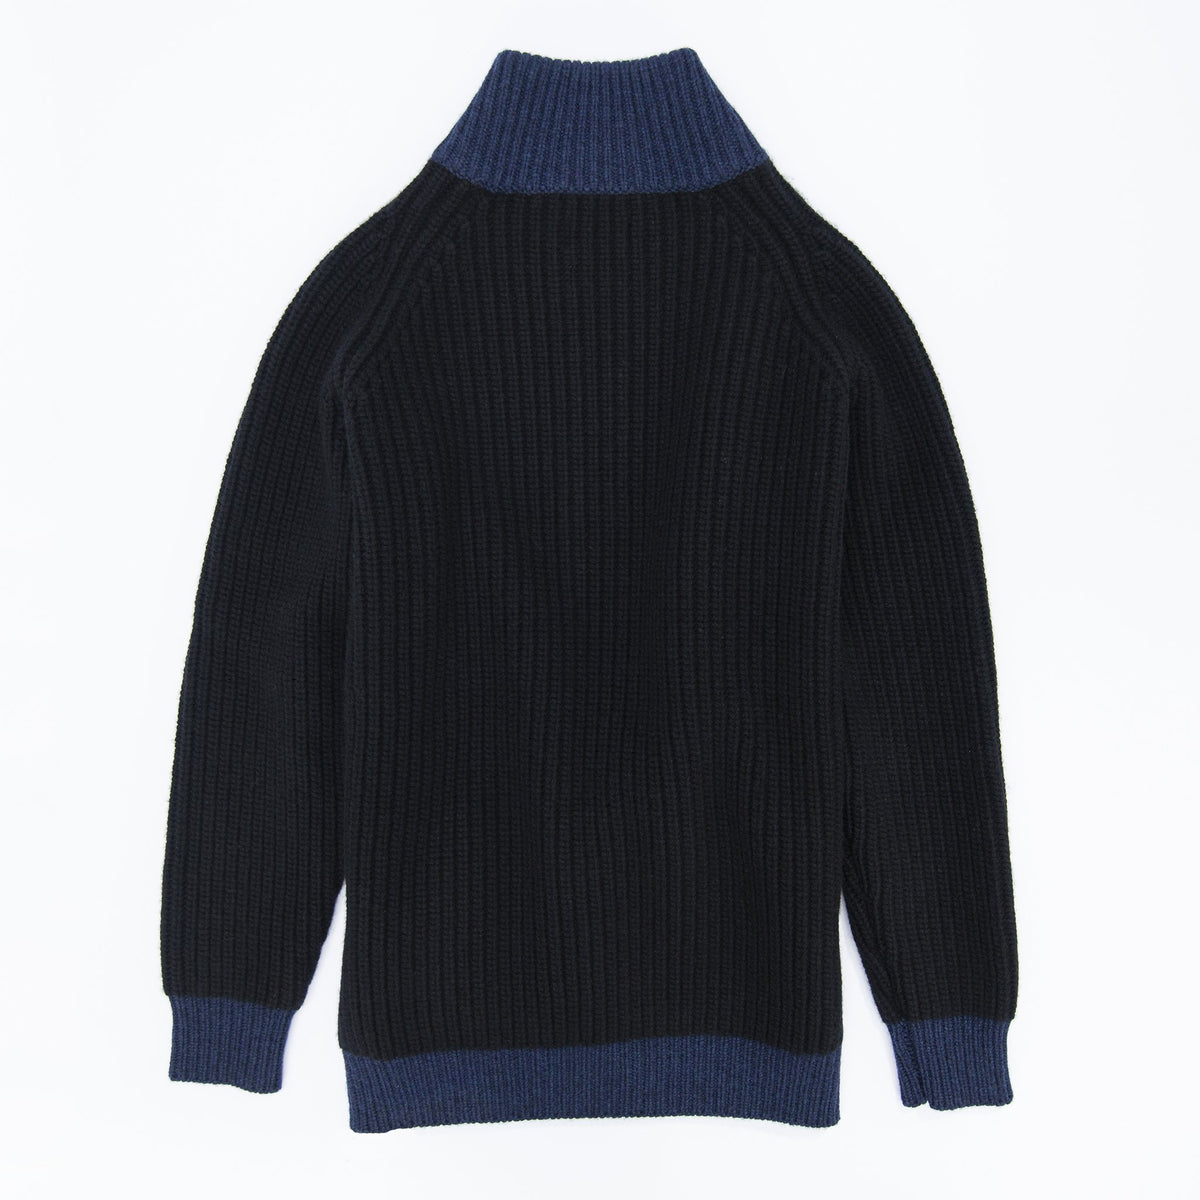 Full-Zip 6-Ply Sweater - Black / Navy